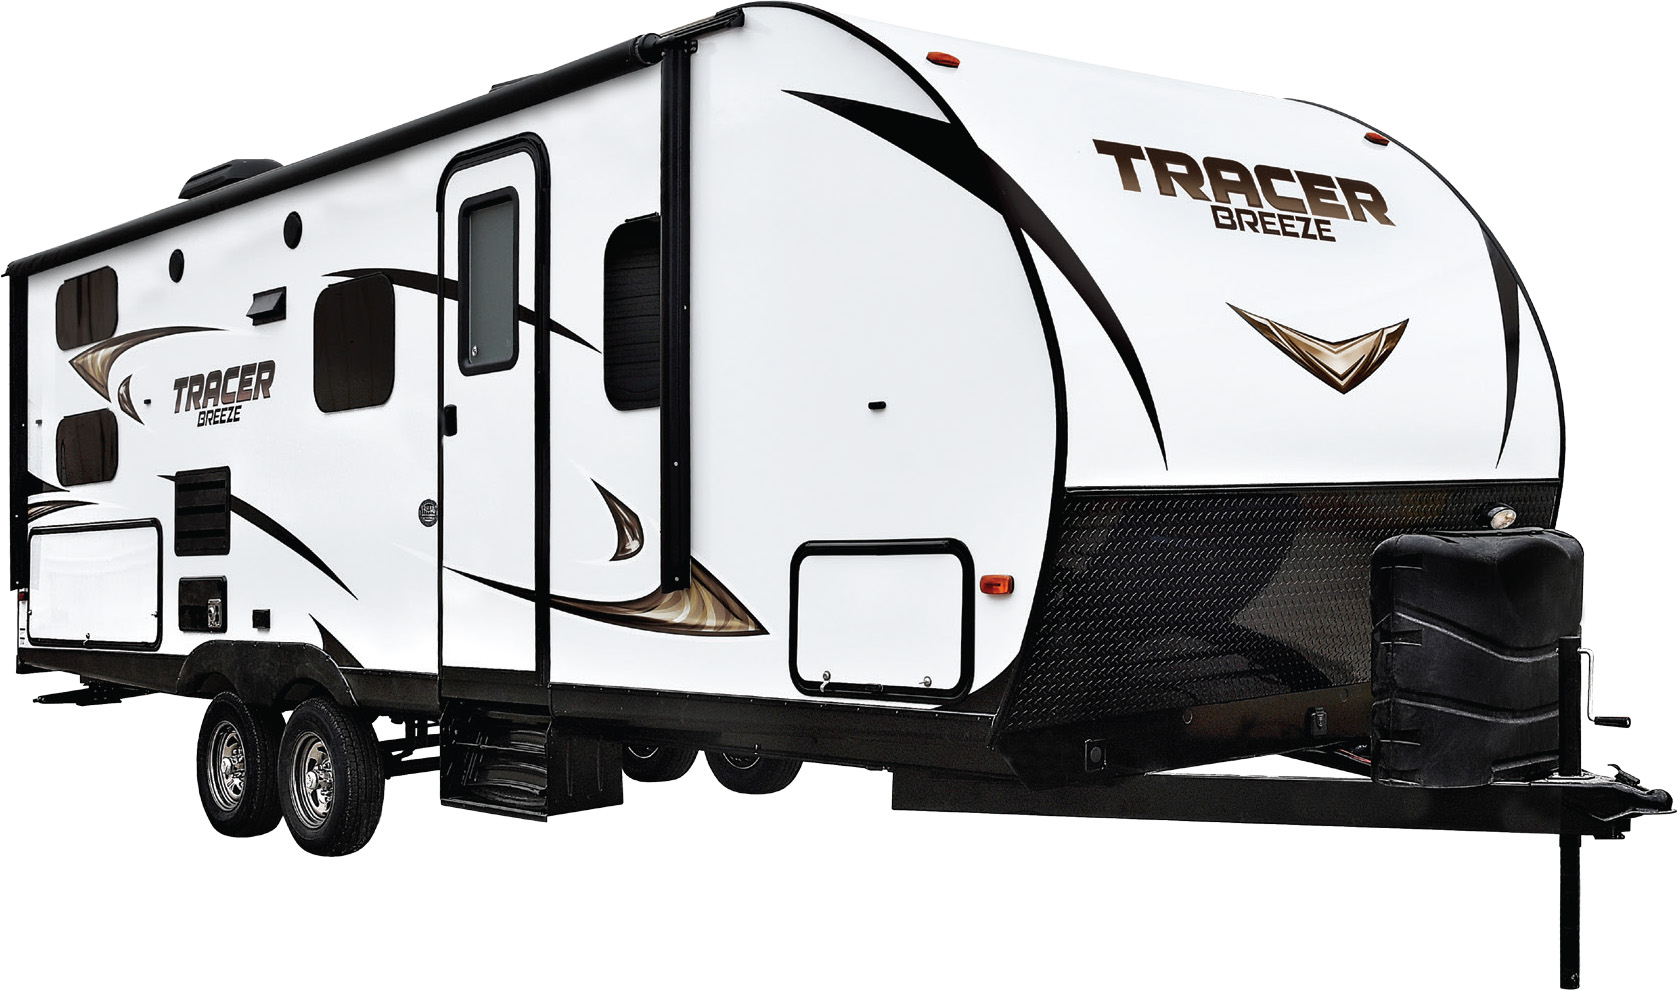 Primetime Tracer Travel Trailer